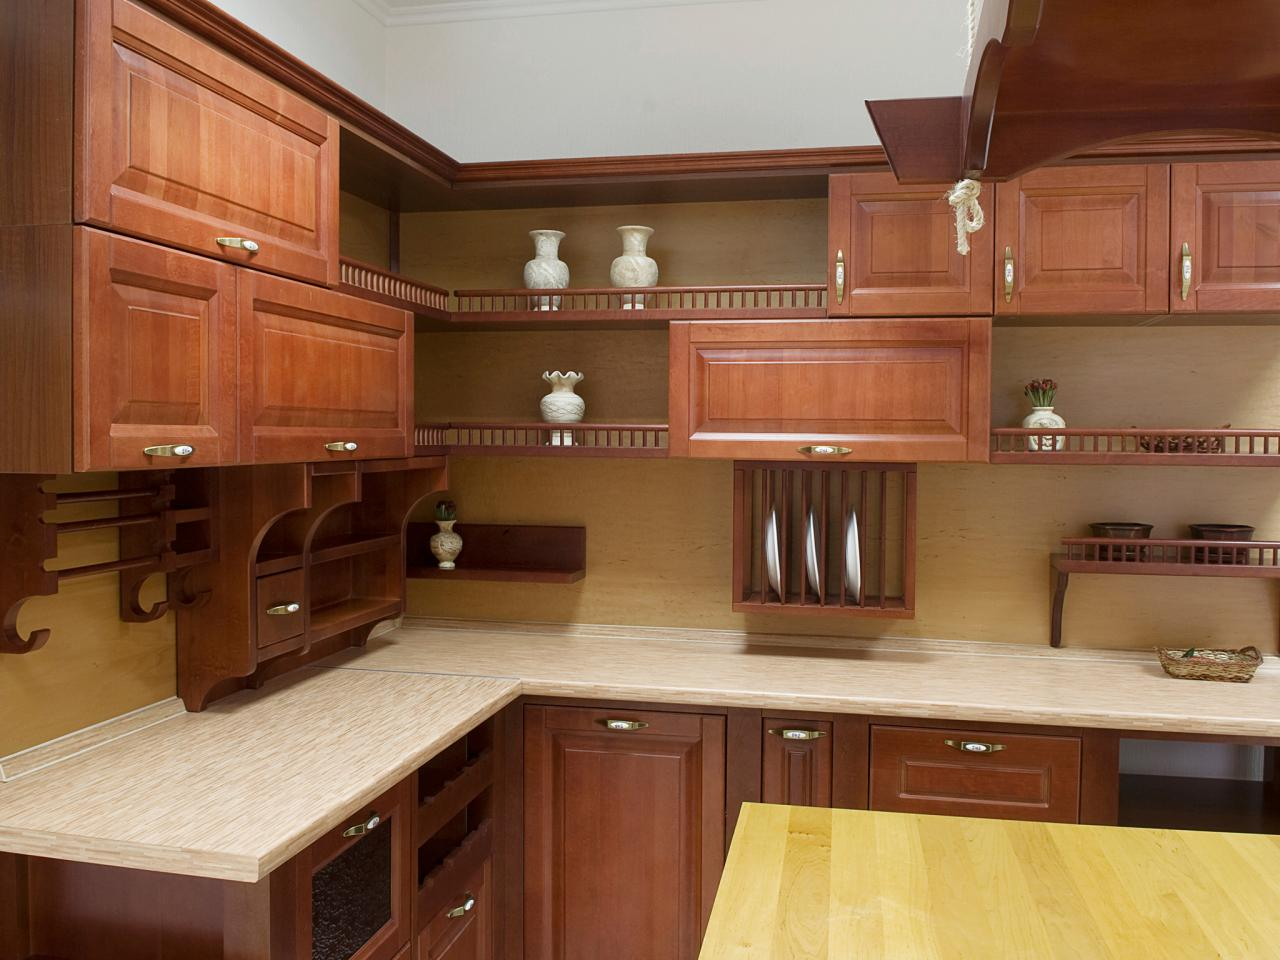 Trending Replacement Kitchen Cabinets kitchen cabinet design ideas